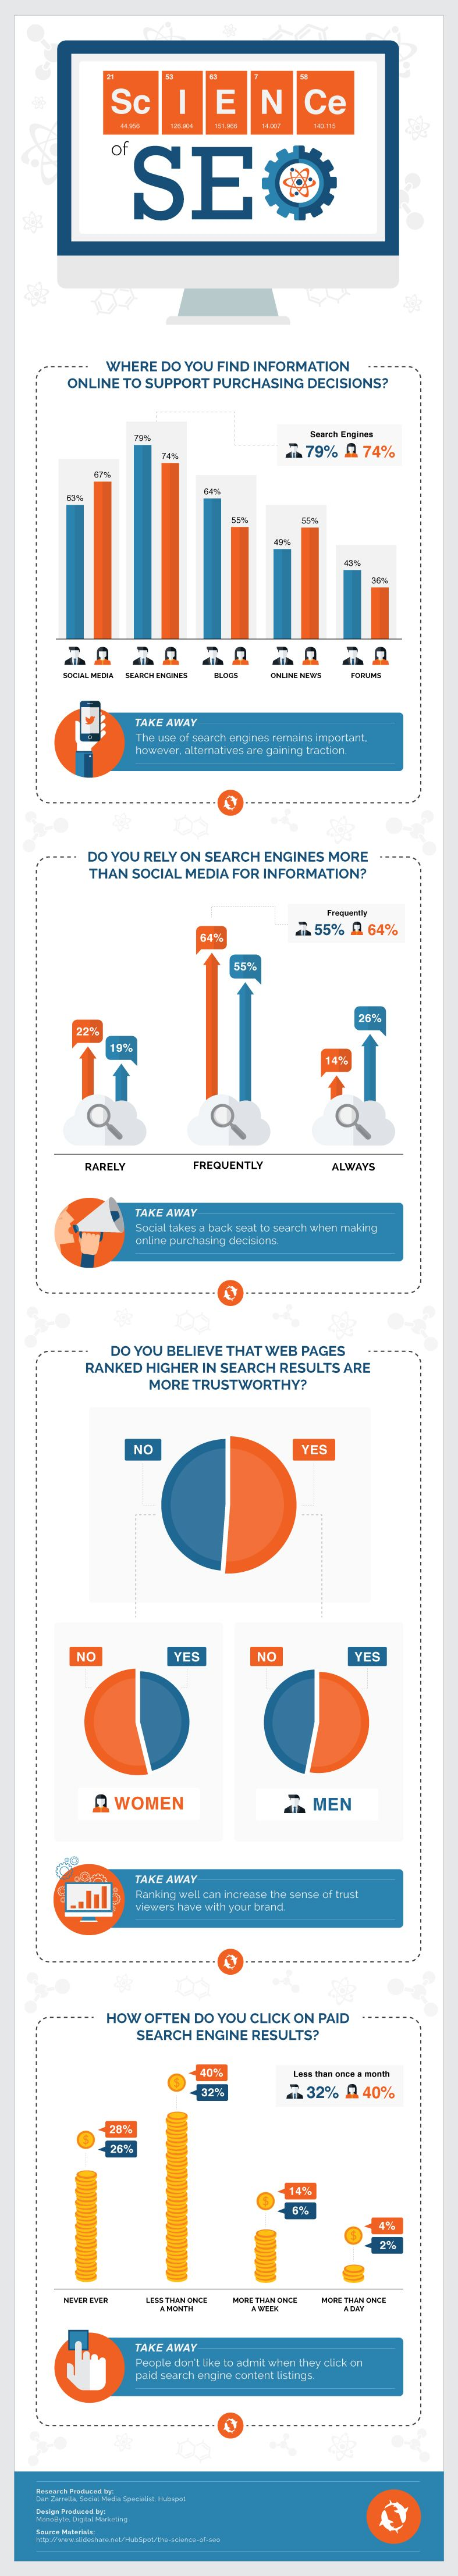 Science of SEO Infographic